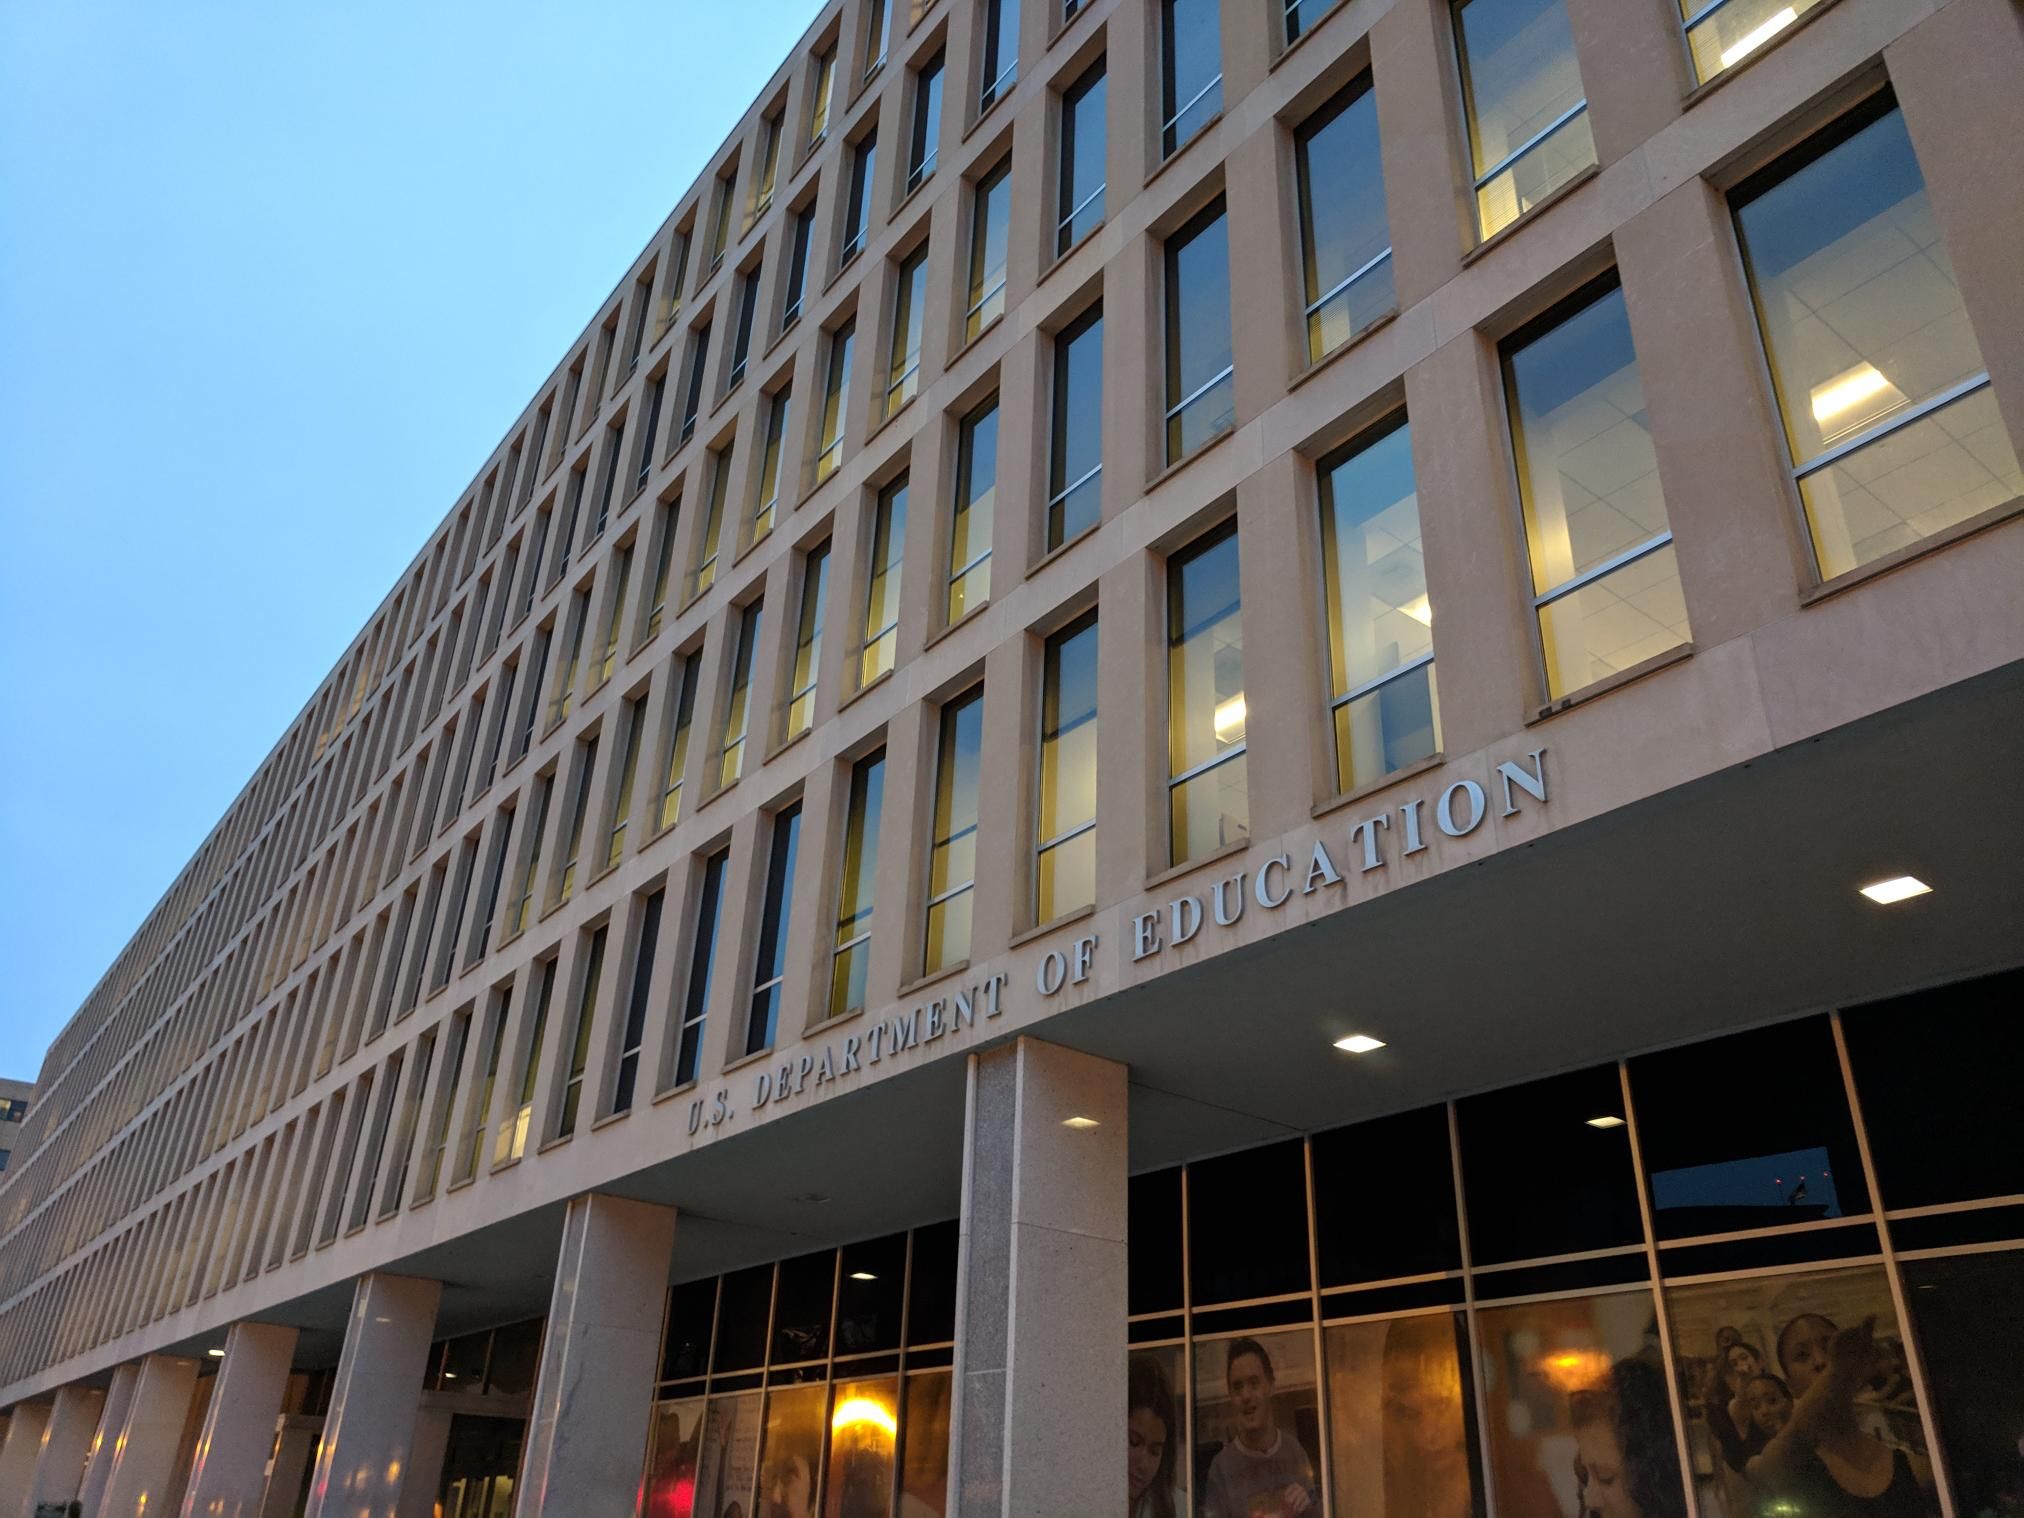 ED Negotiated Rulemaking: Issue Summary and Seeking